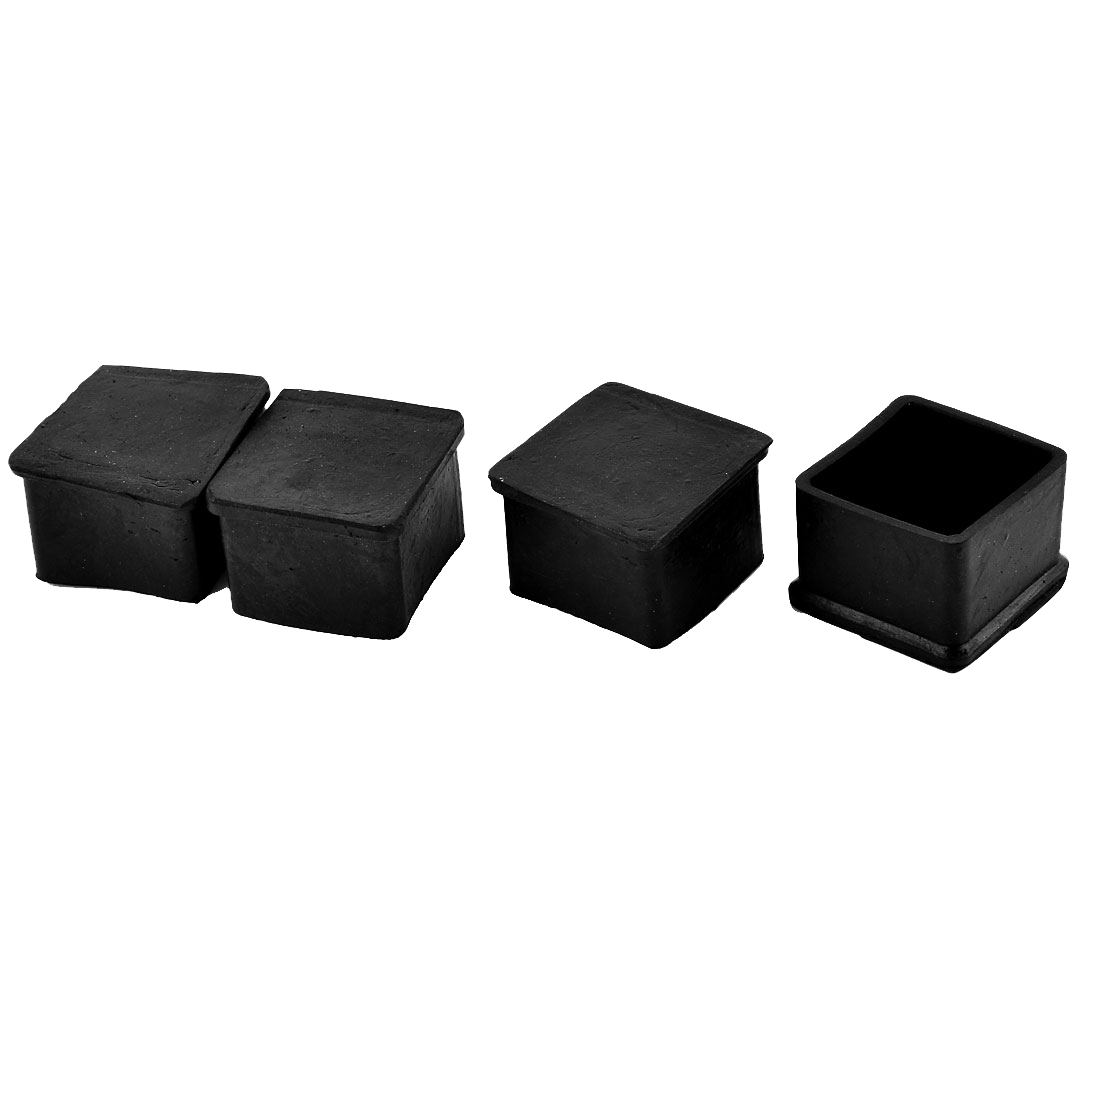 40mm x 40mm Square Shaped Furniture Foot Rubber End Caps Cover Black 4pcs